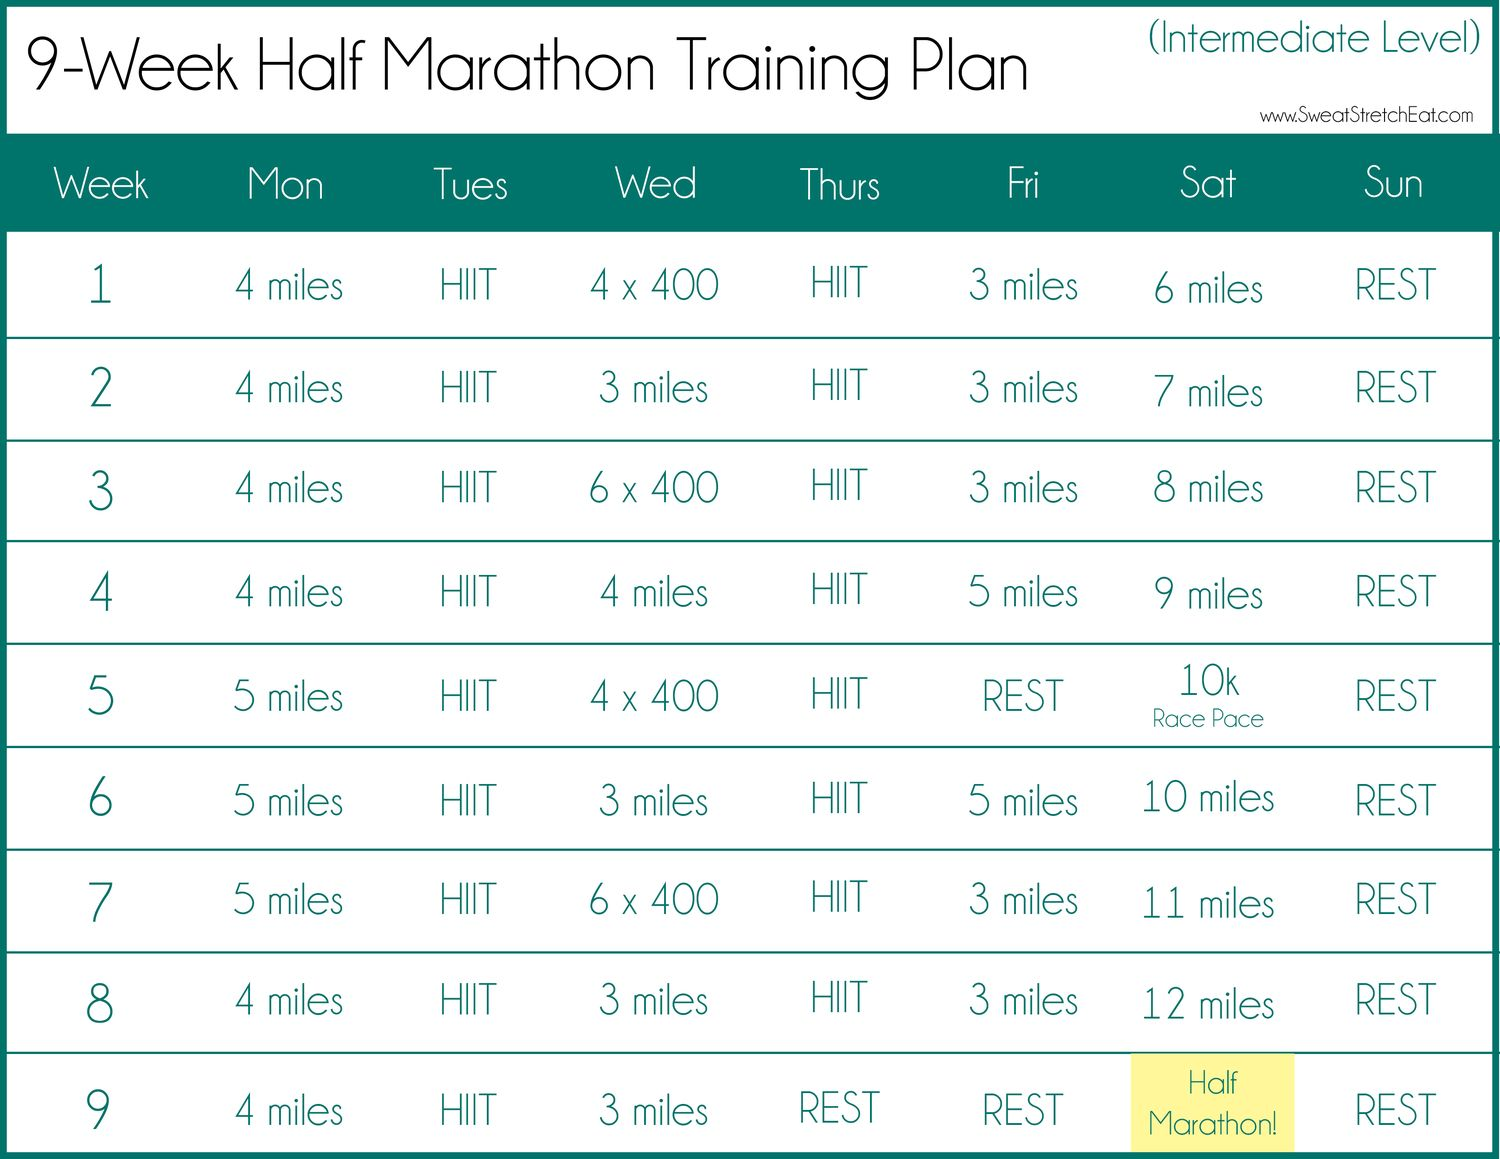 WeekHalfMarathonTrainingPlan  Half Marathon Training